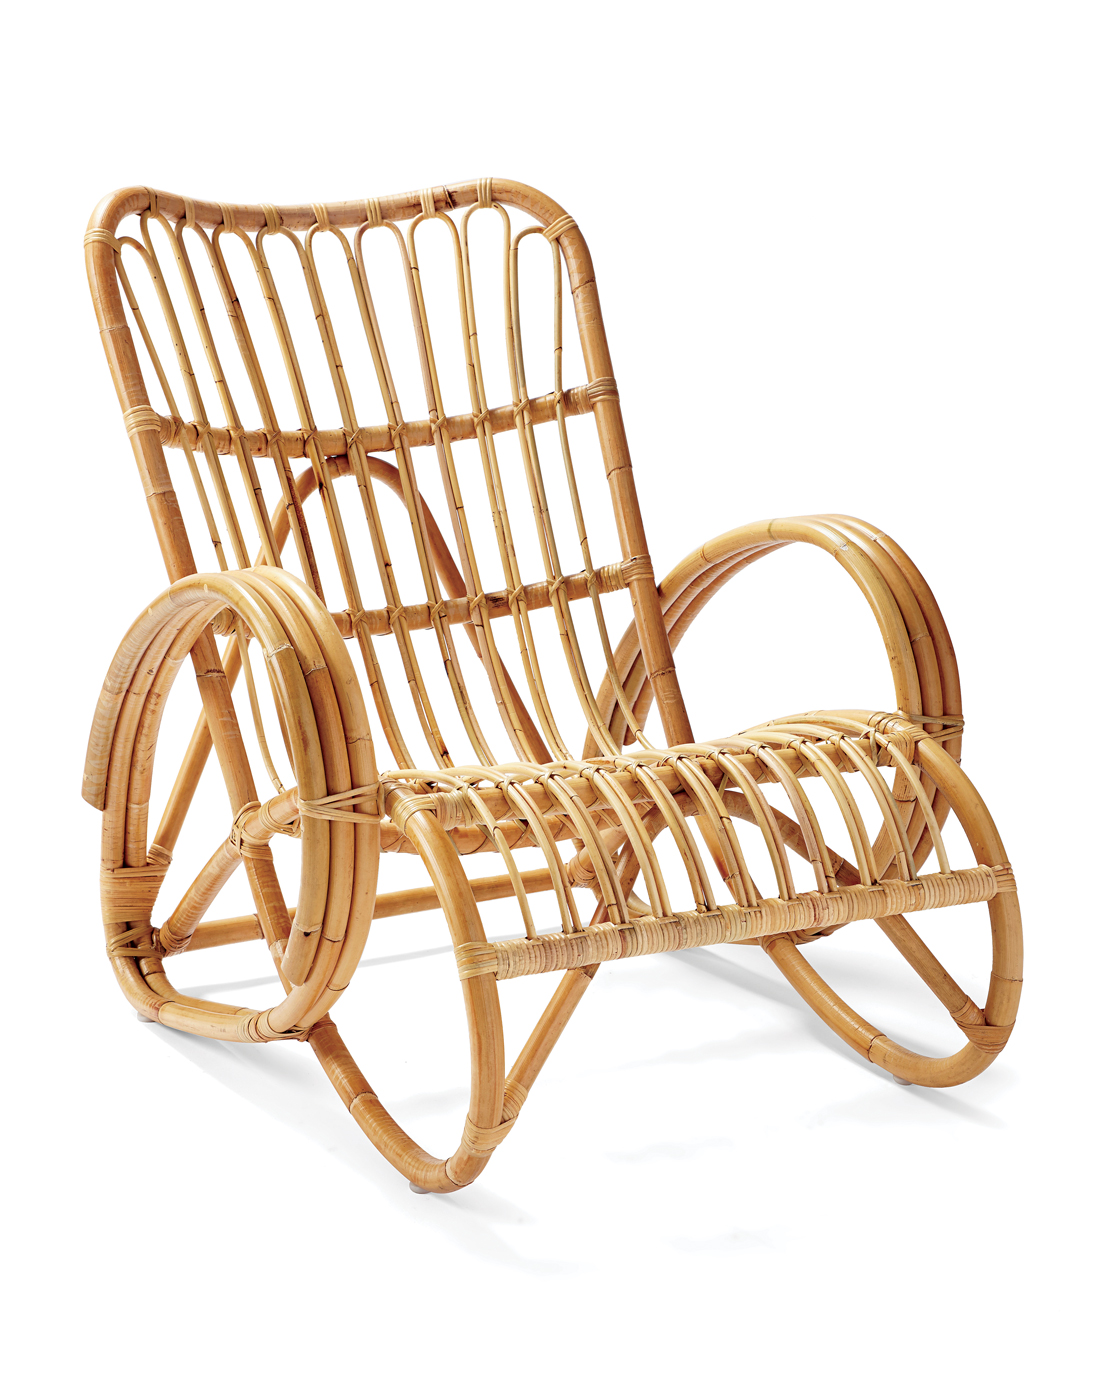 Rattan Chair with curvy edges, resembling a rocking chair.